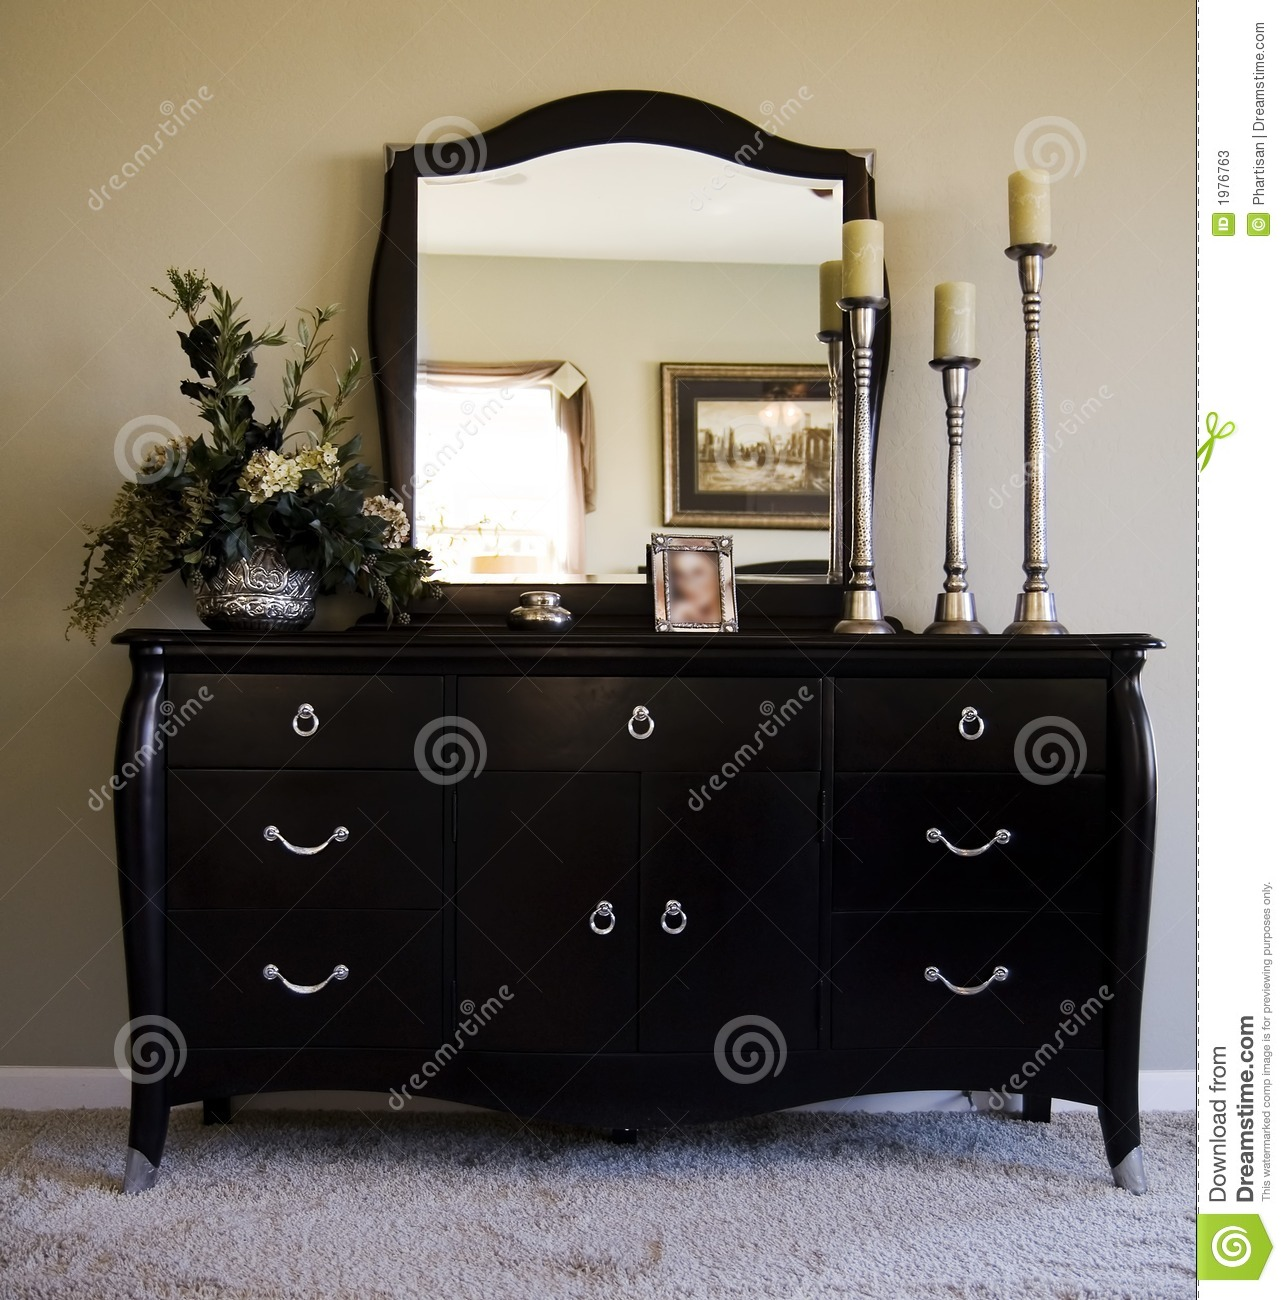 romantic bedroom with mirror on dresser stock photos image 1976763